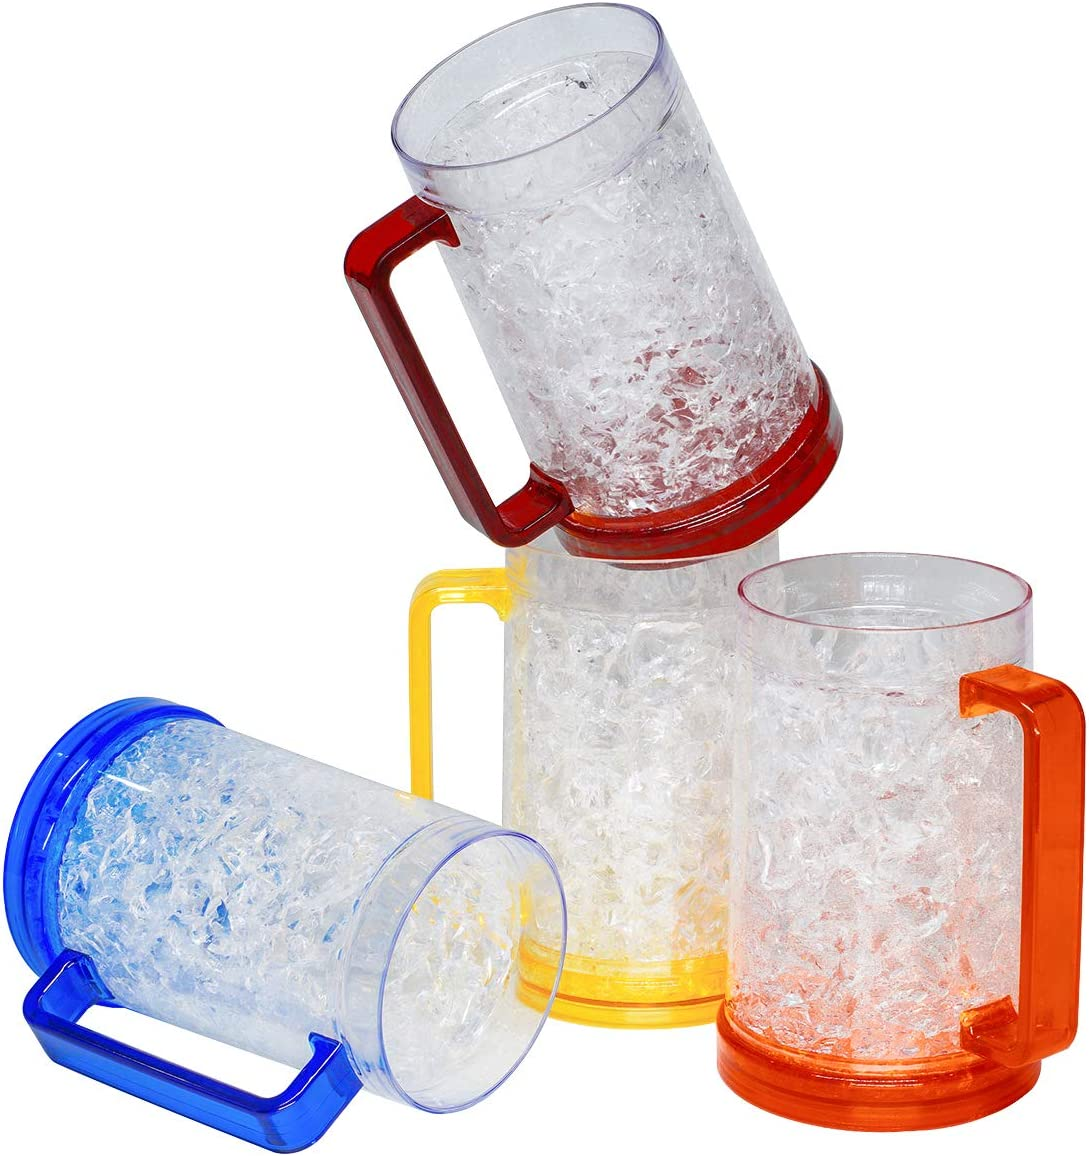 Double Wall Gel Frosty Freezer Ice Mugs, Set of 4 Frosty Beer Mugs with Handle Great as Old Fashion Drinking Glasses at BBQs and Parties (16 oz. Each)